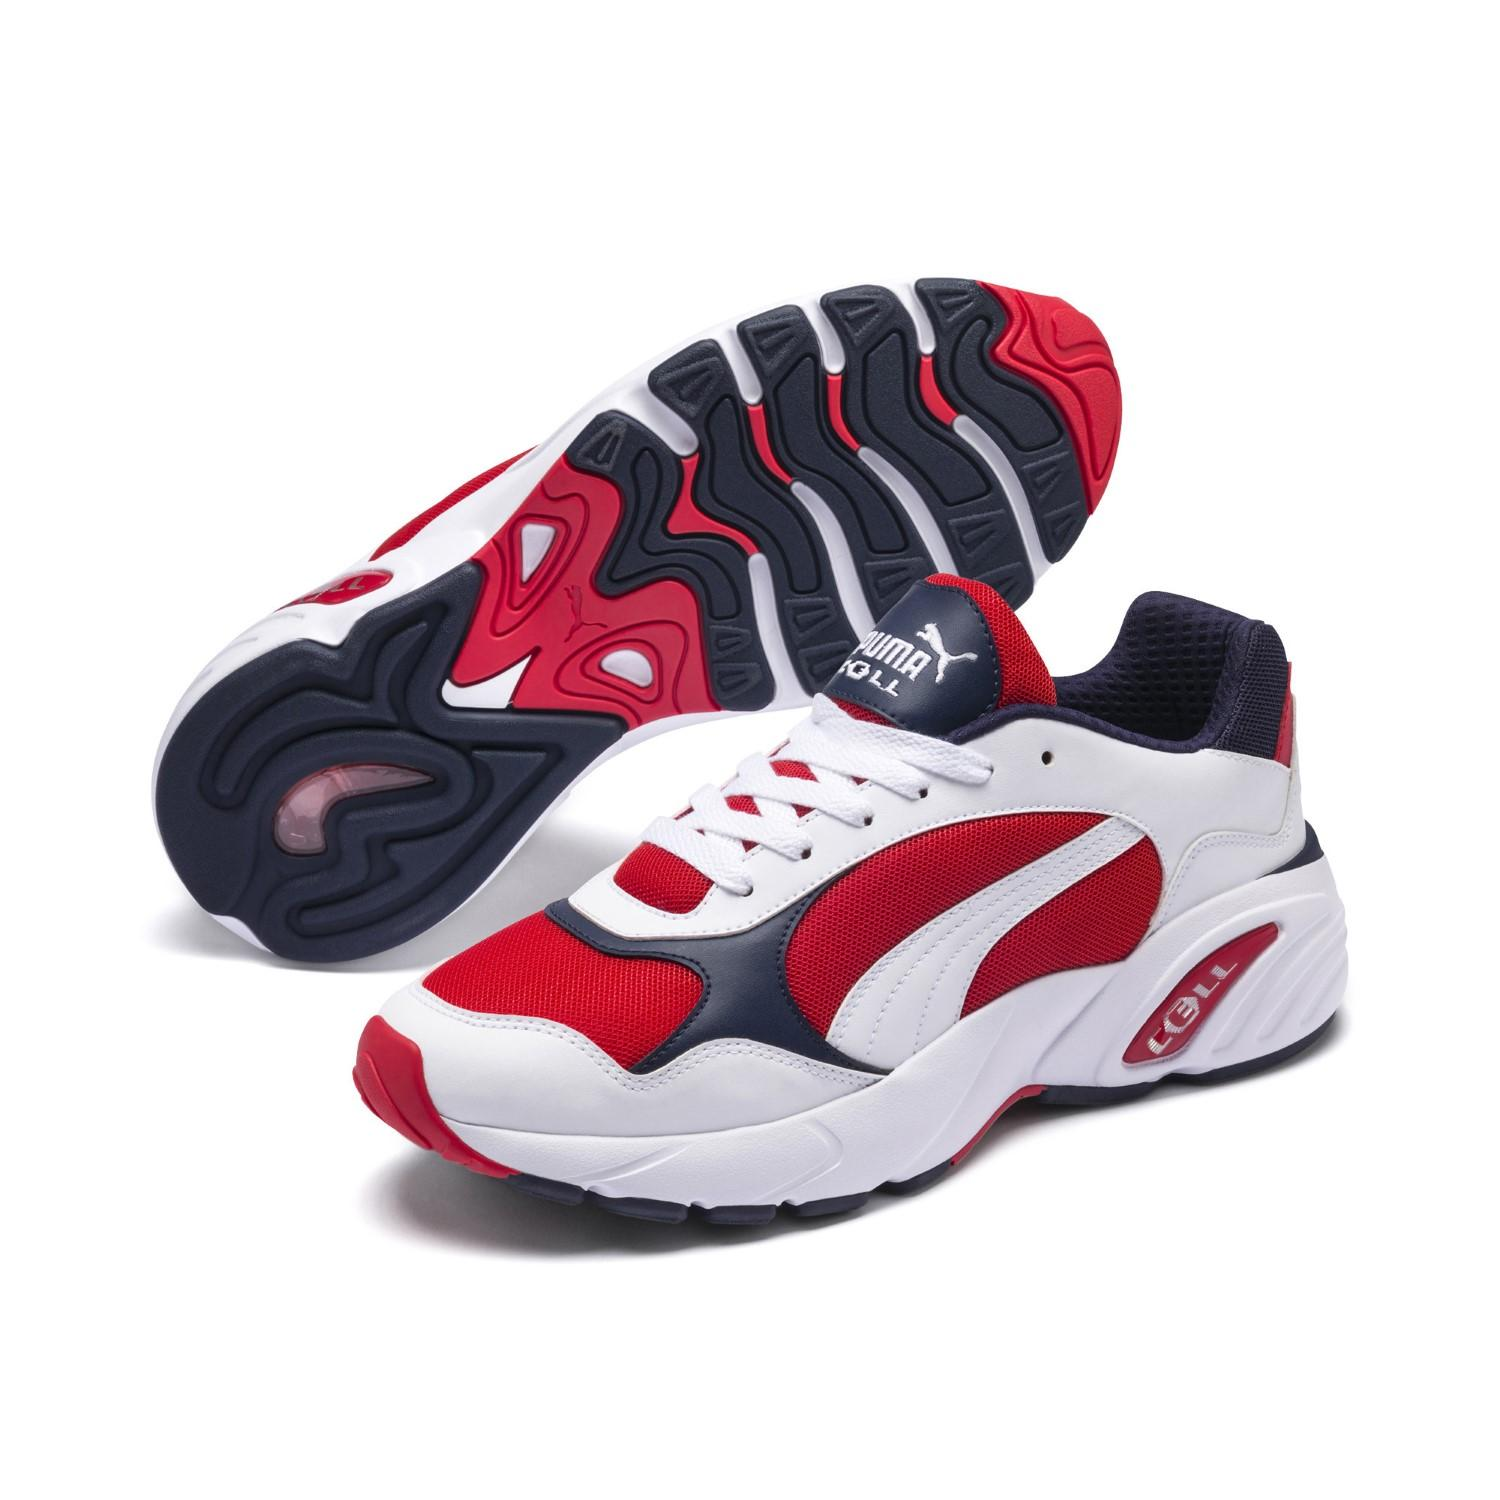 c72de292cf PUMA Cell Viper Sneakers in Red for Men - Save 34% - Lyst